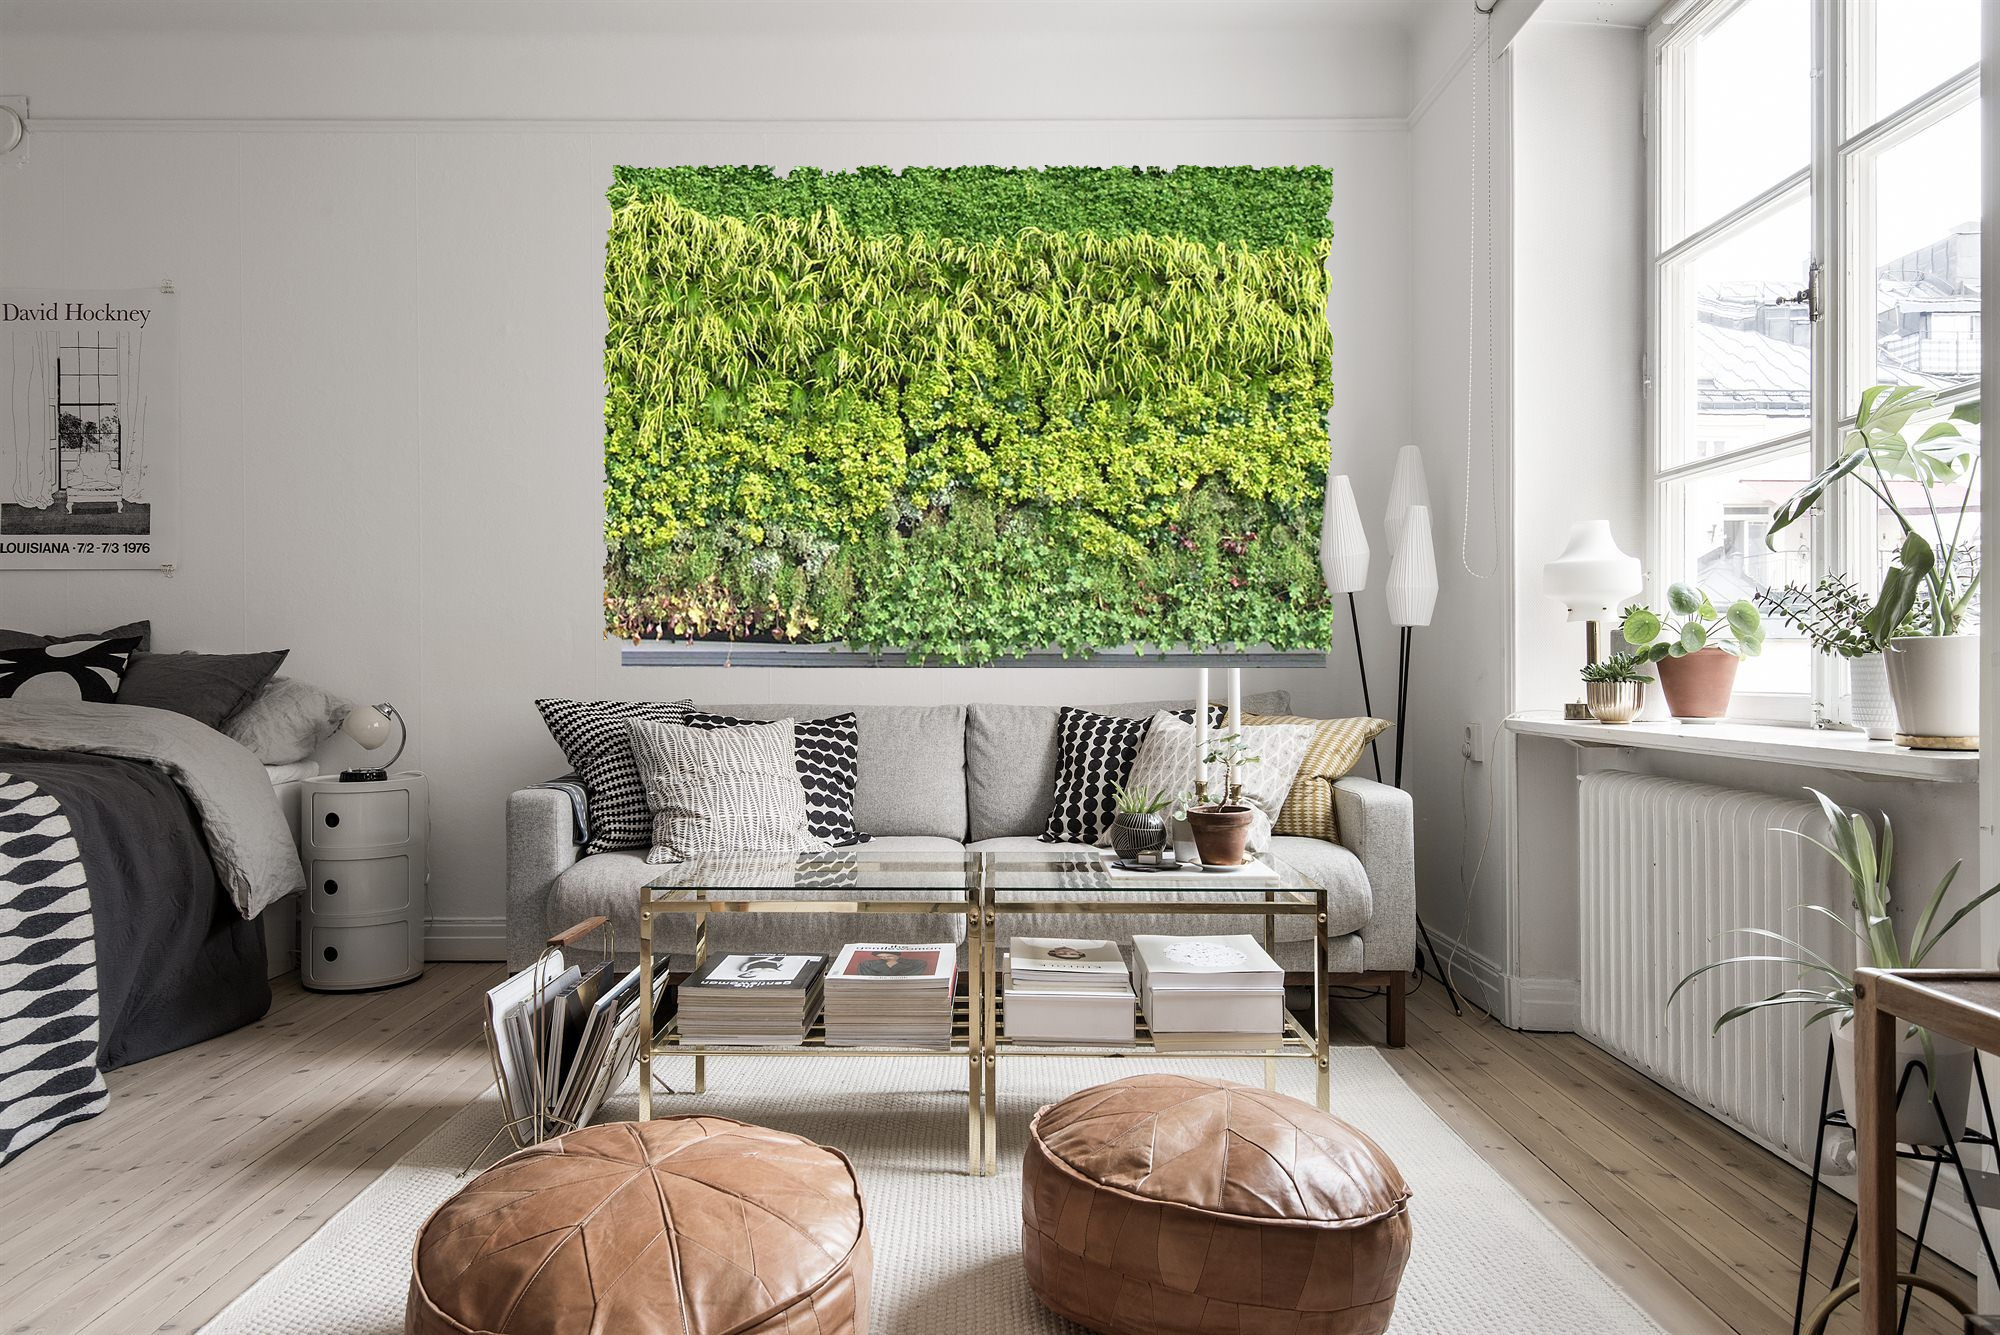 Beautiful living room with living green wall art.